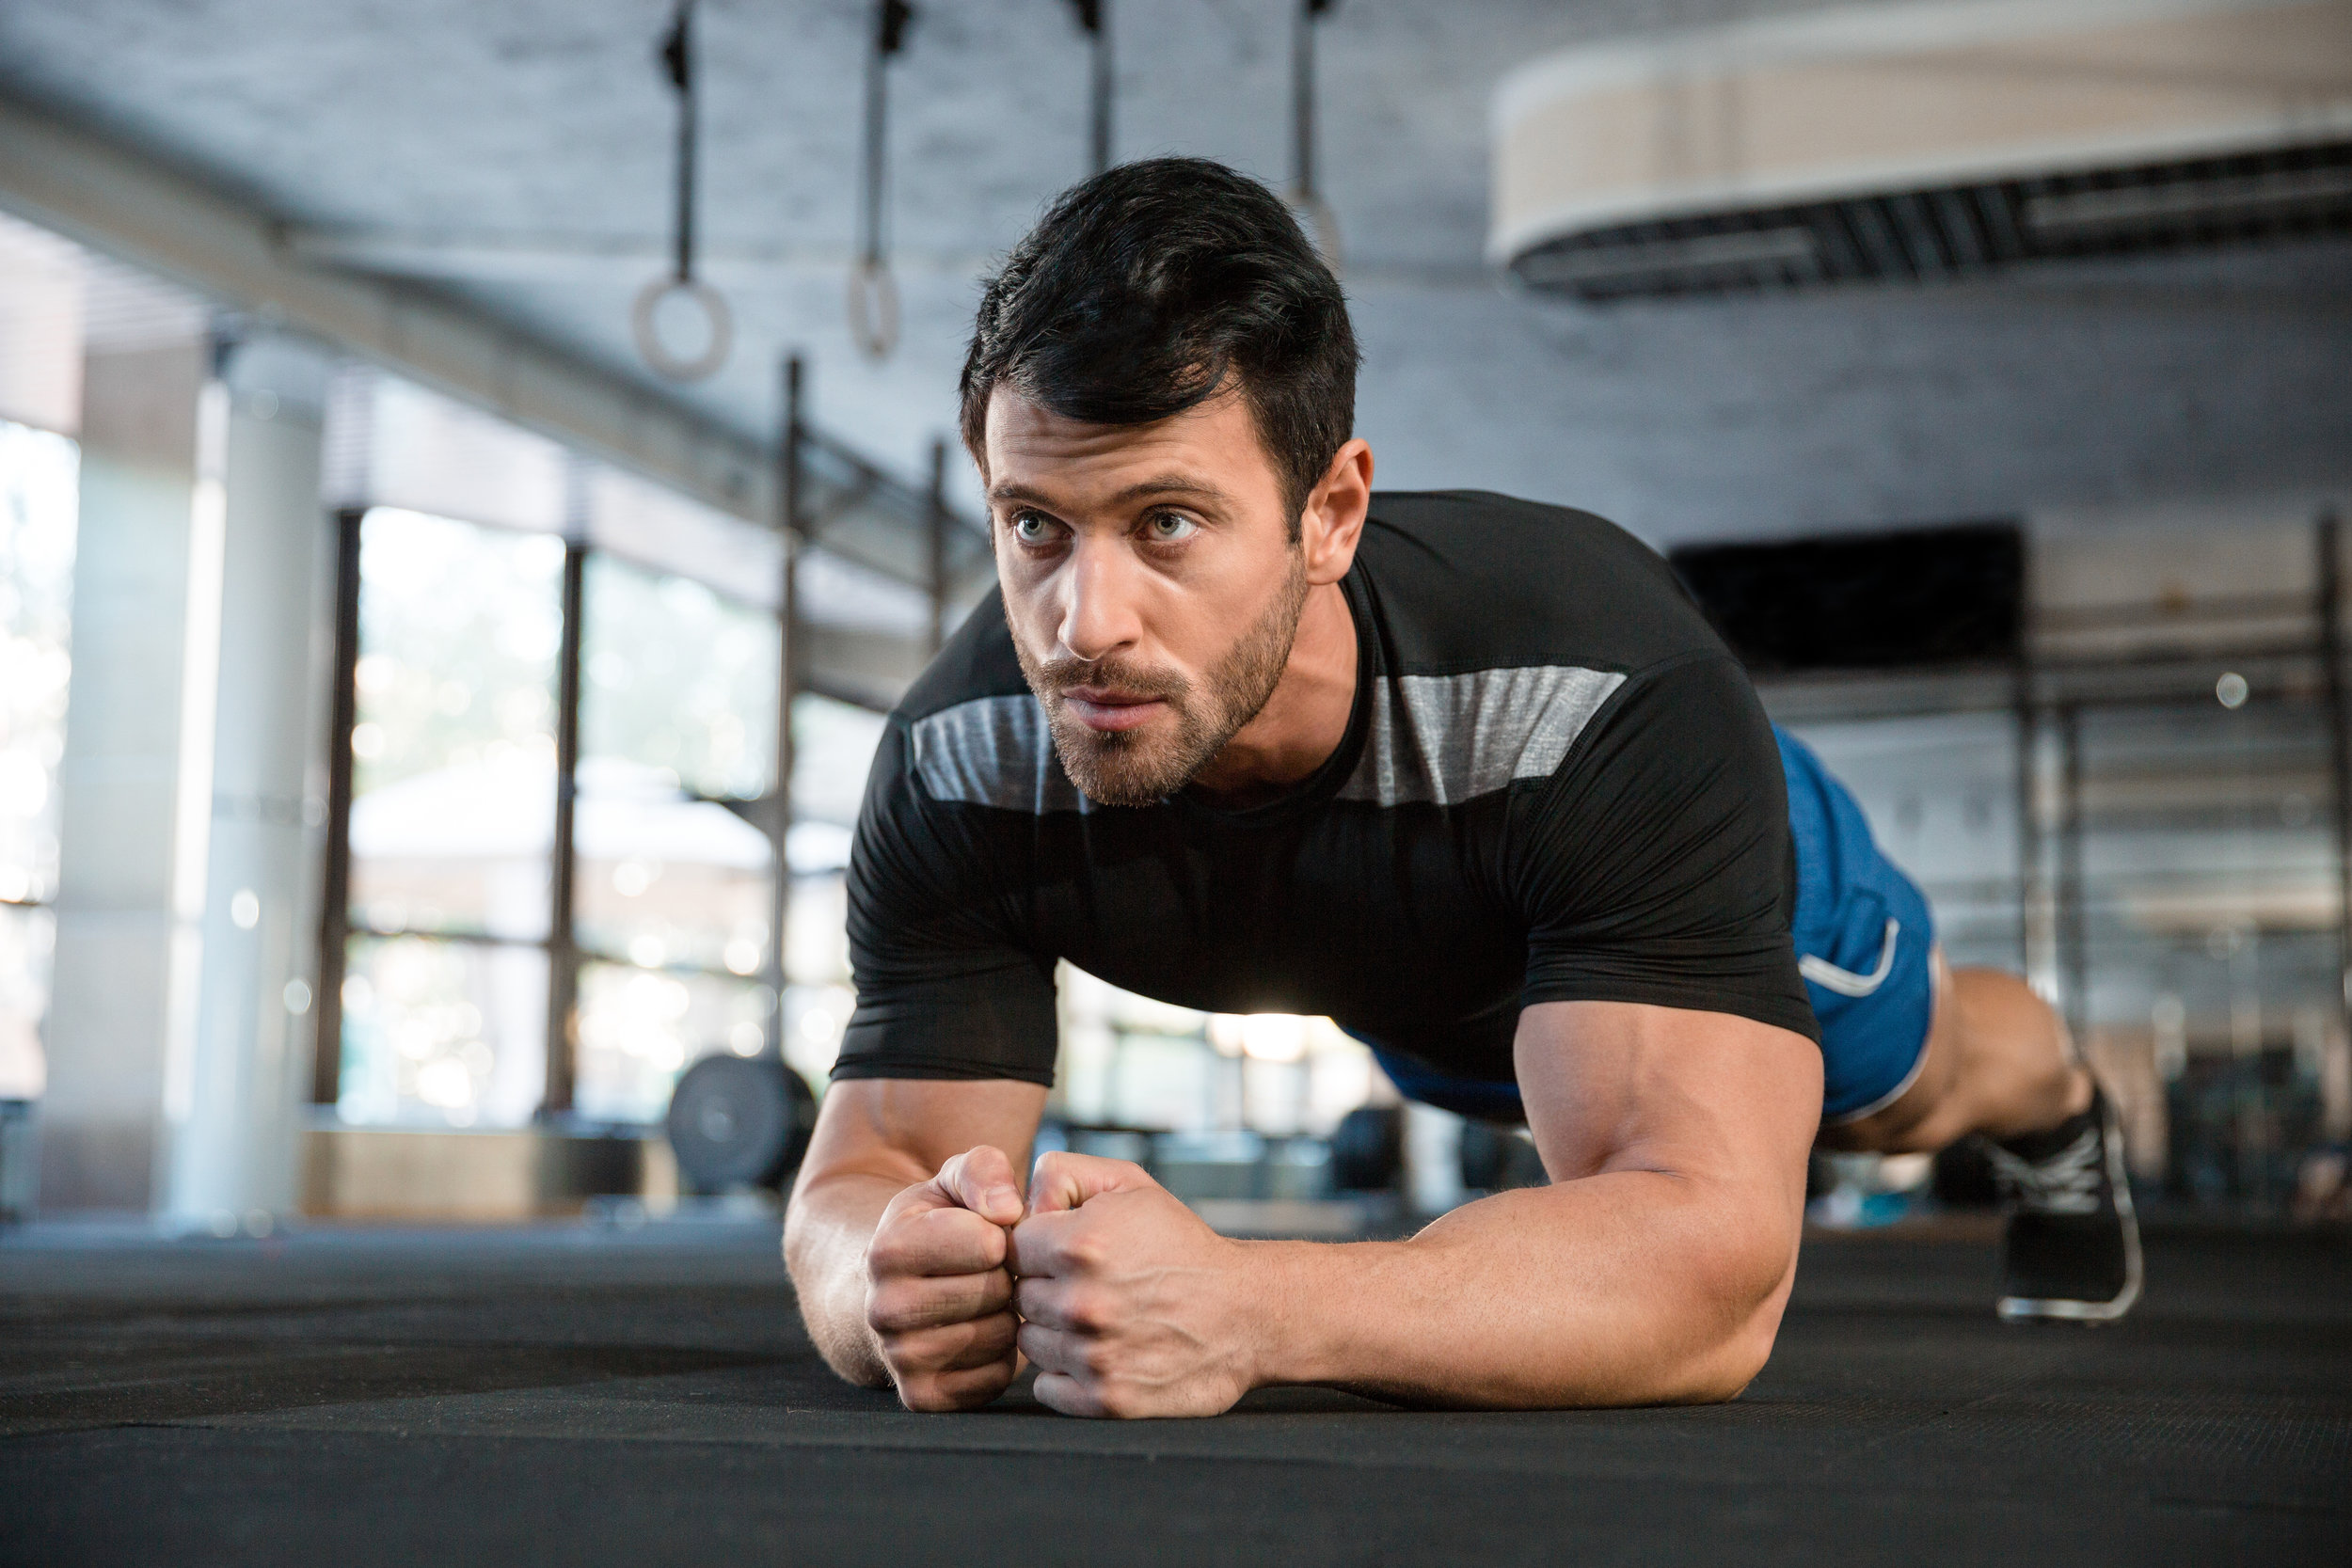 Male athlete wearing blue shorts and black t-shirt improving overall body composition through physical exercises